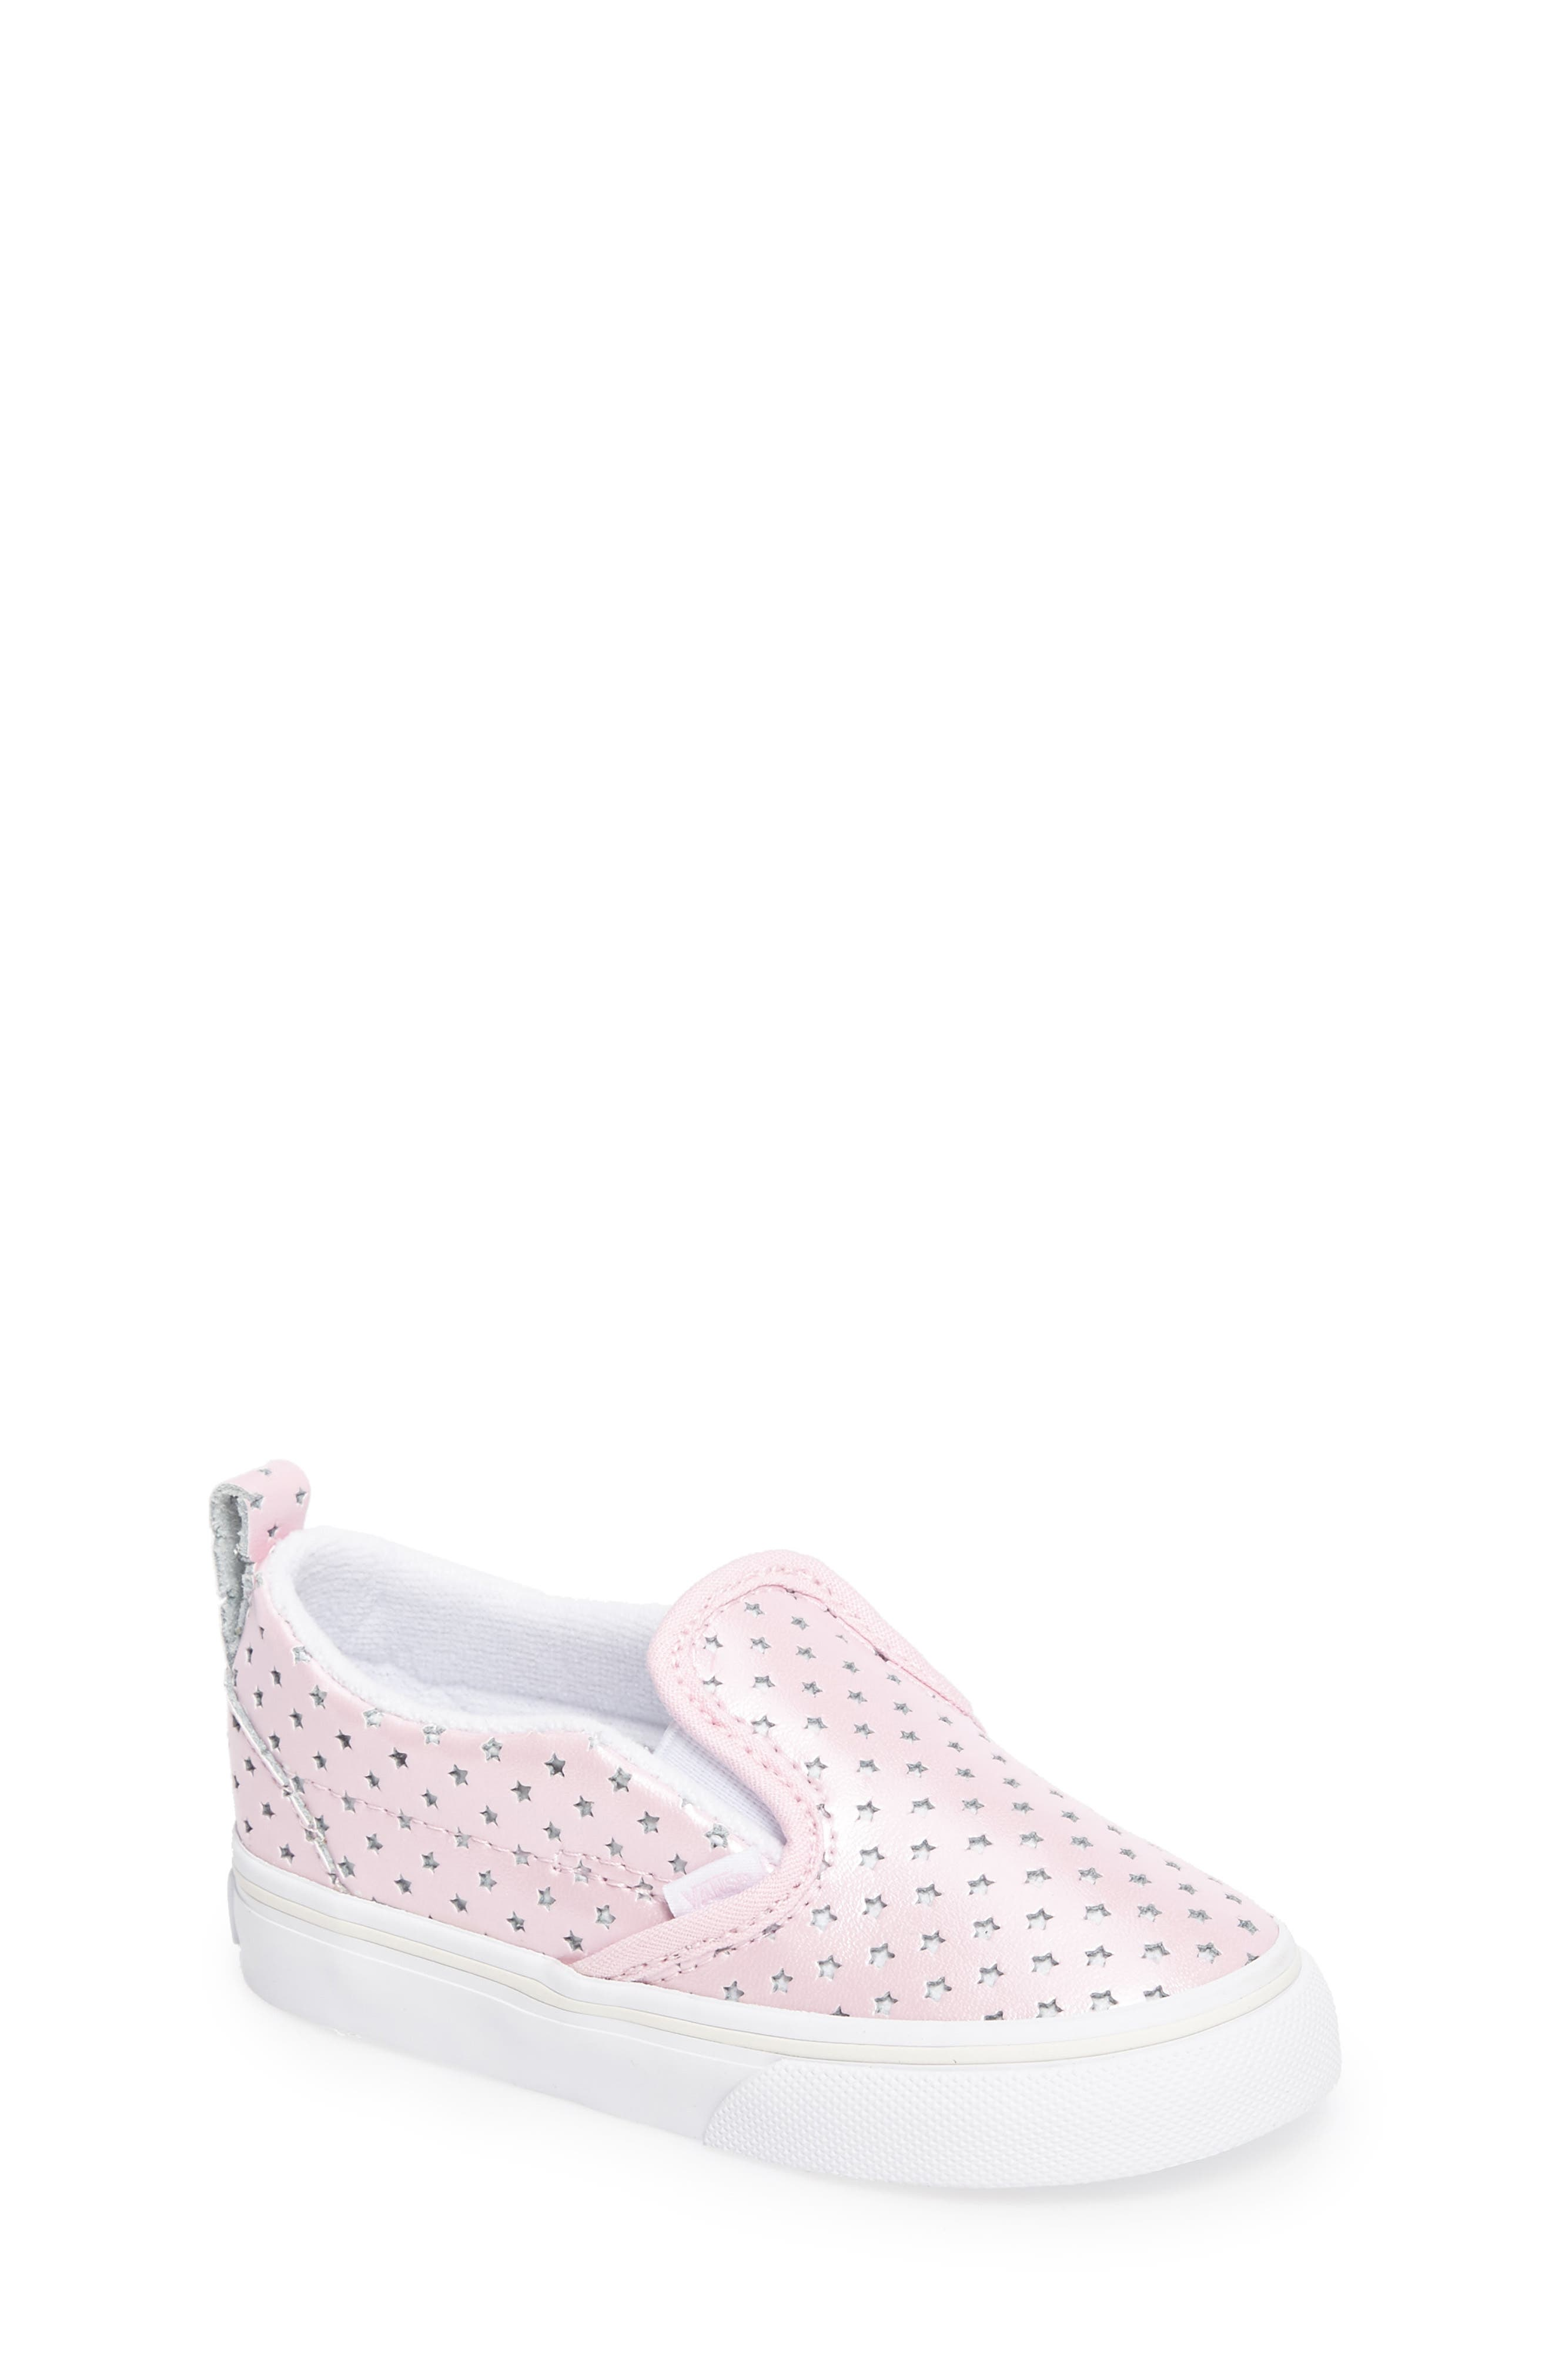 Classic Perforated Slip-On Sneaker,                             Main thumbnail 1, color,                             650